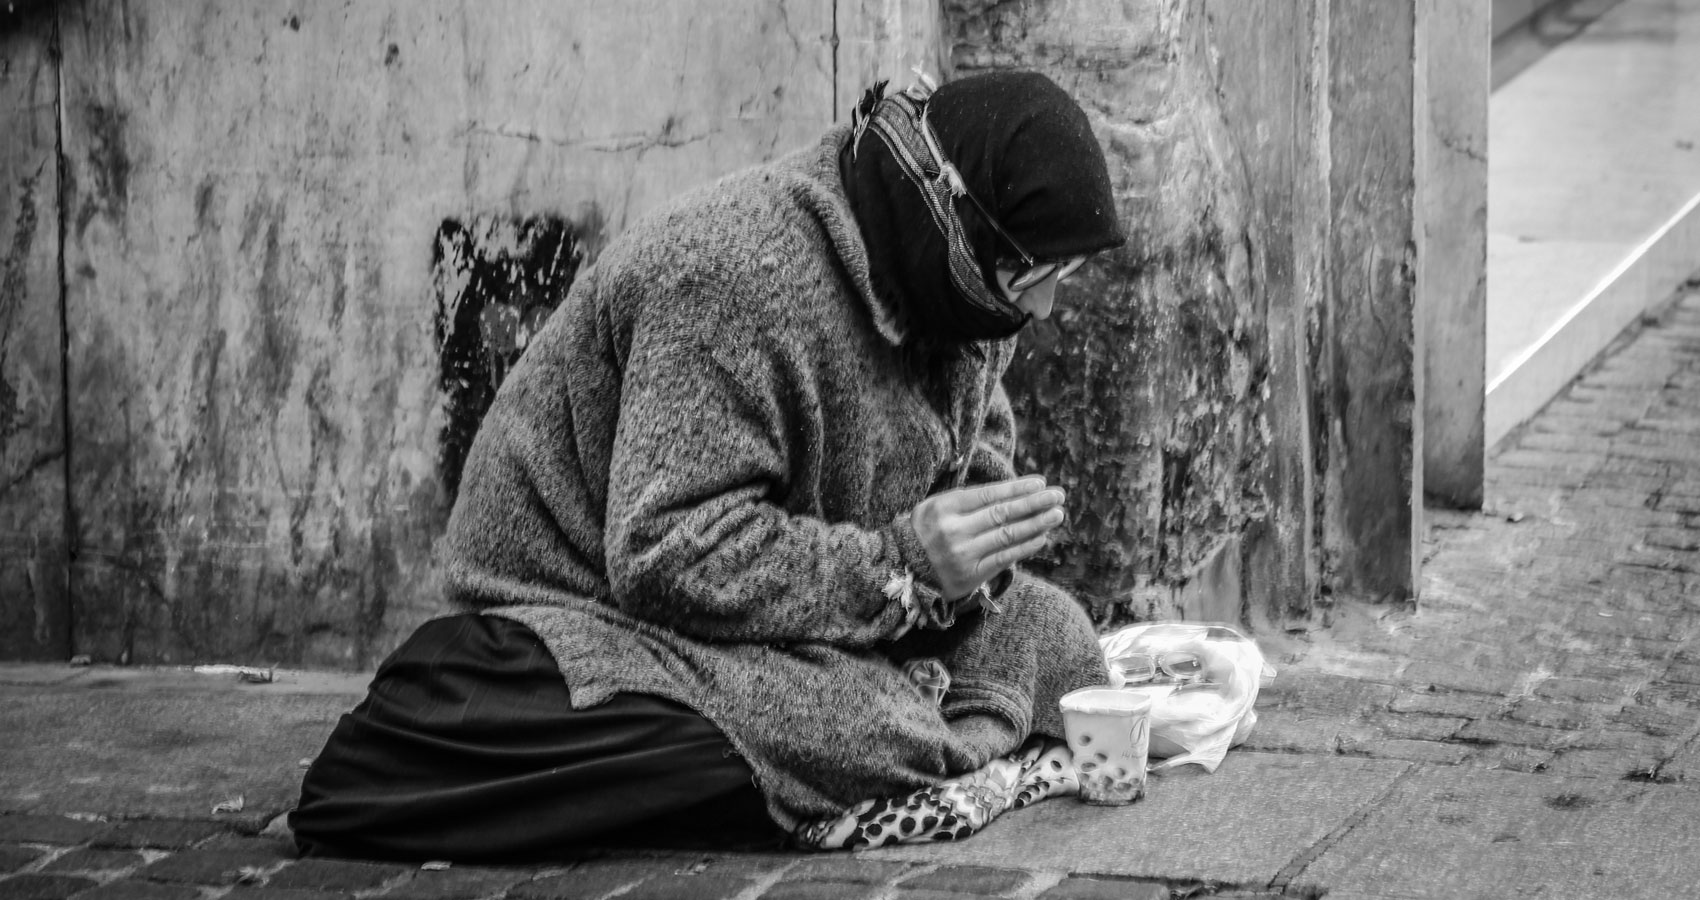 The Homeless Guy, a poem written by Robin McNamara at Spillwords.com